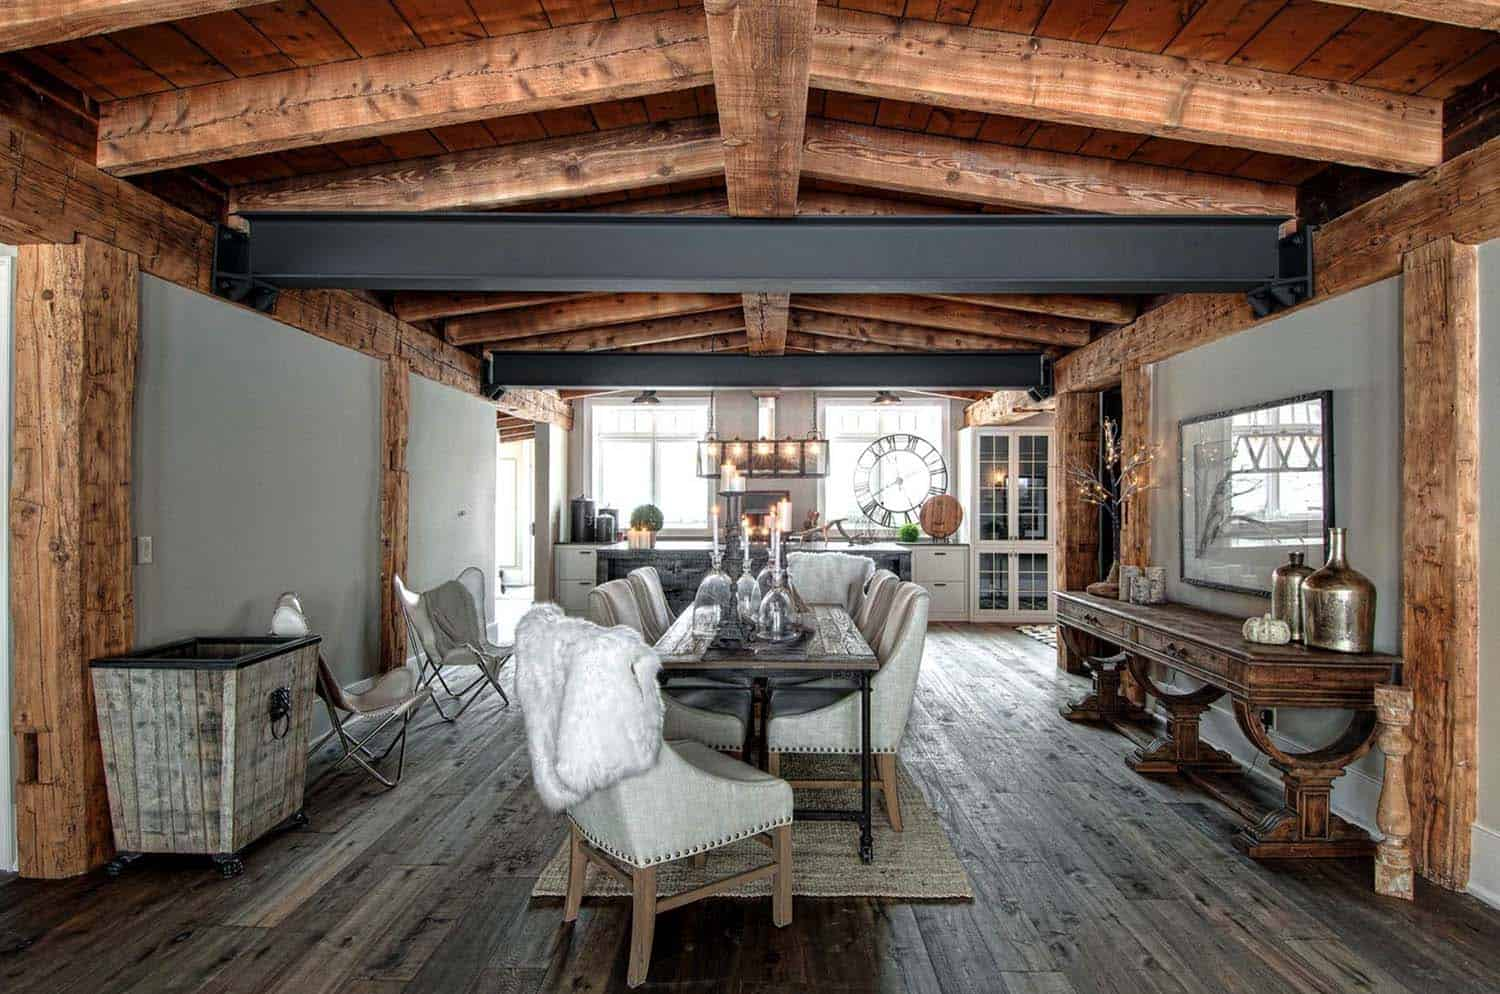 Rustic-Modern-Design-Timberworx Custom Homes-10-1 Kindesign